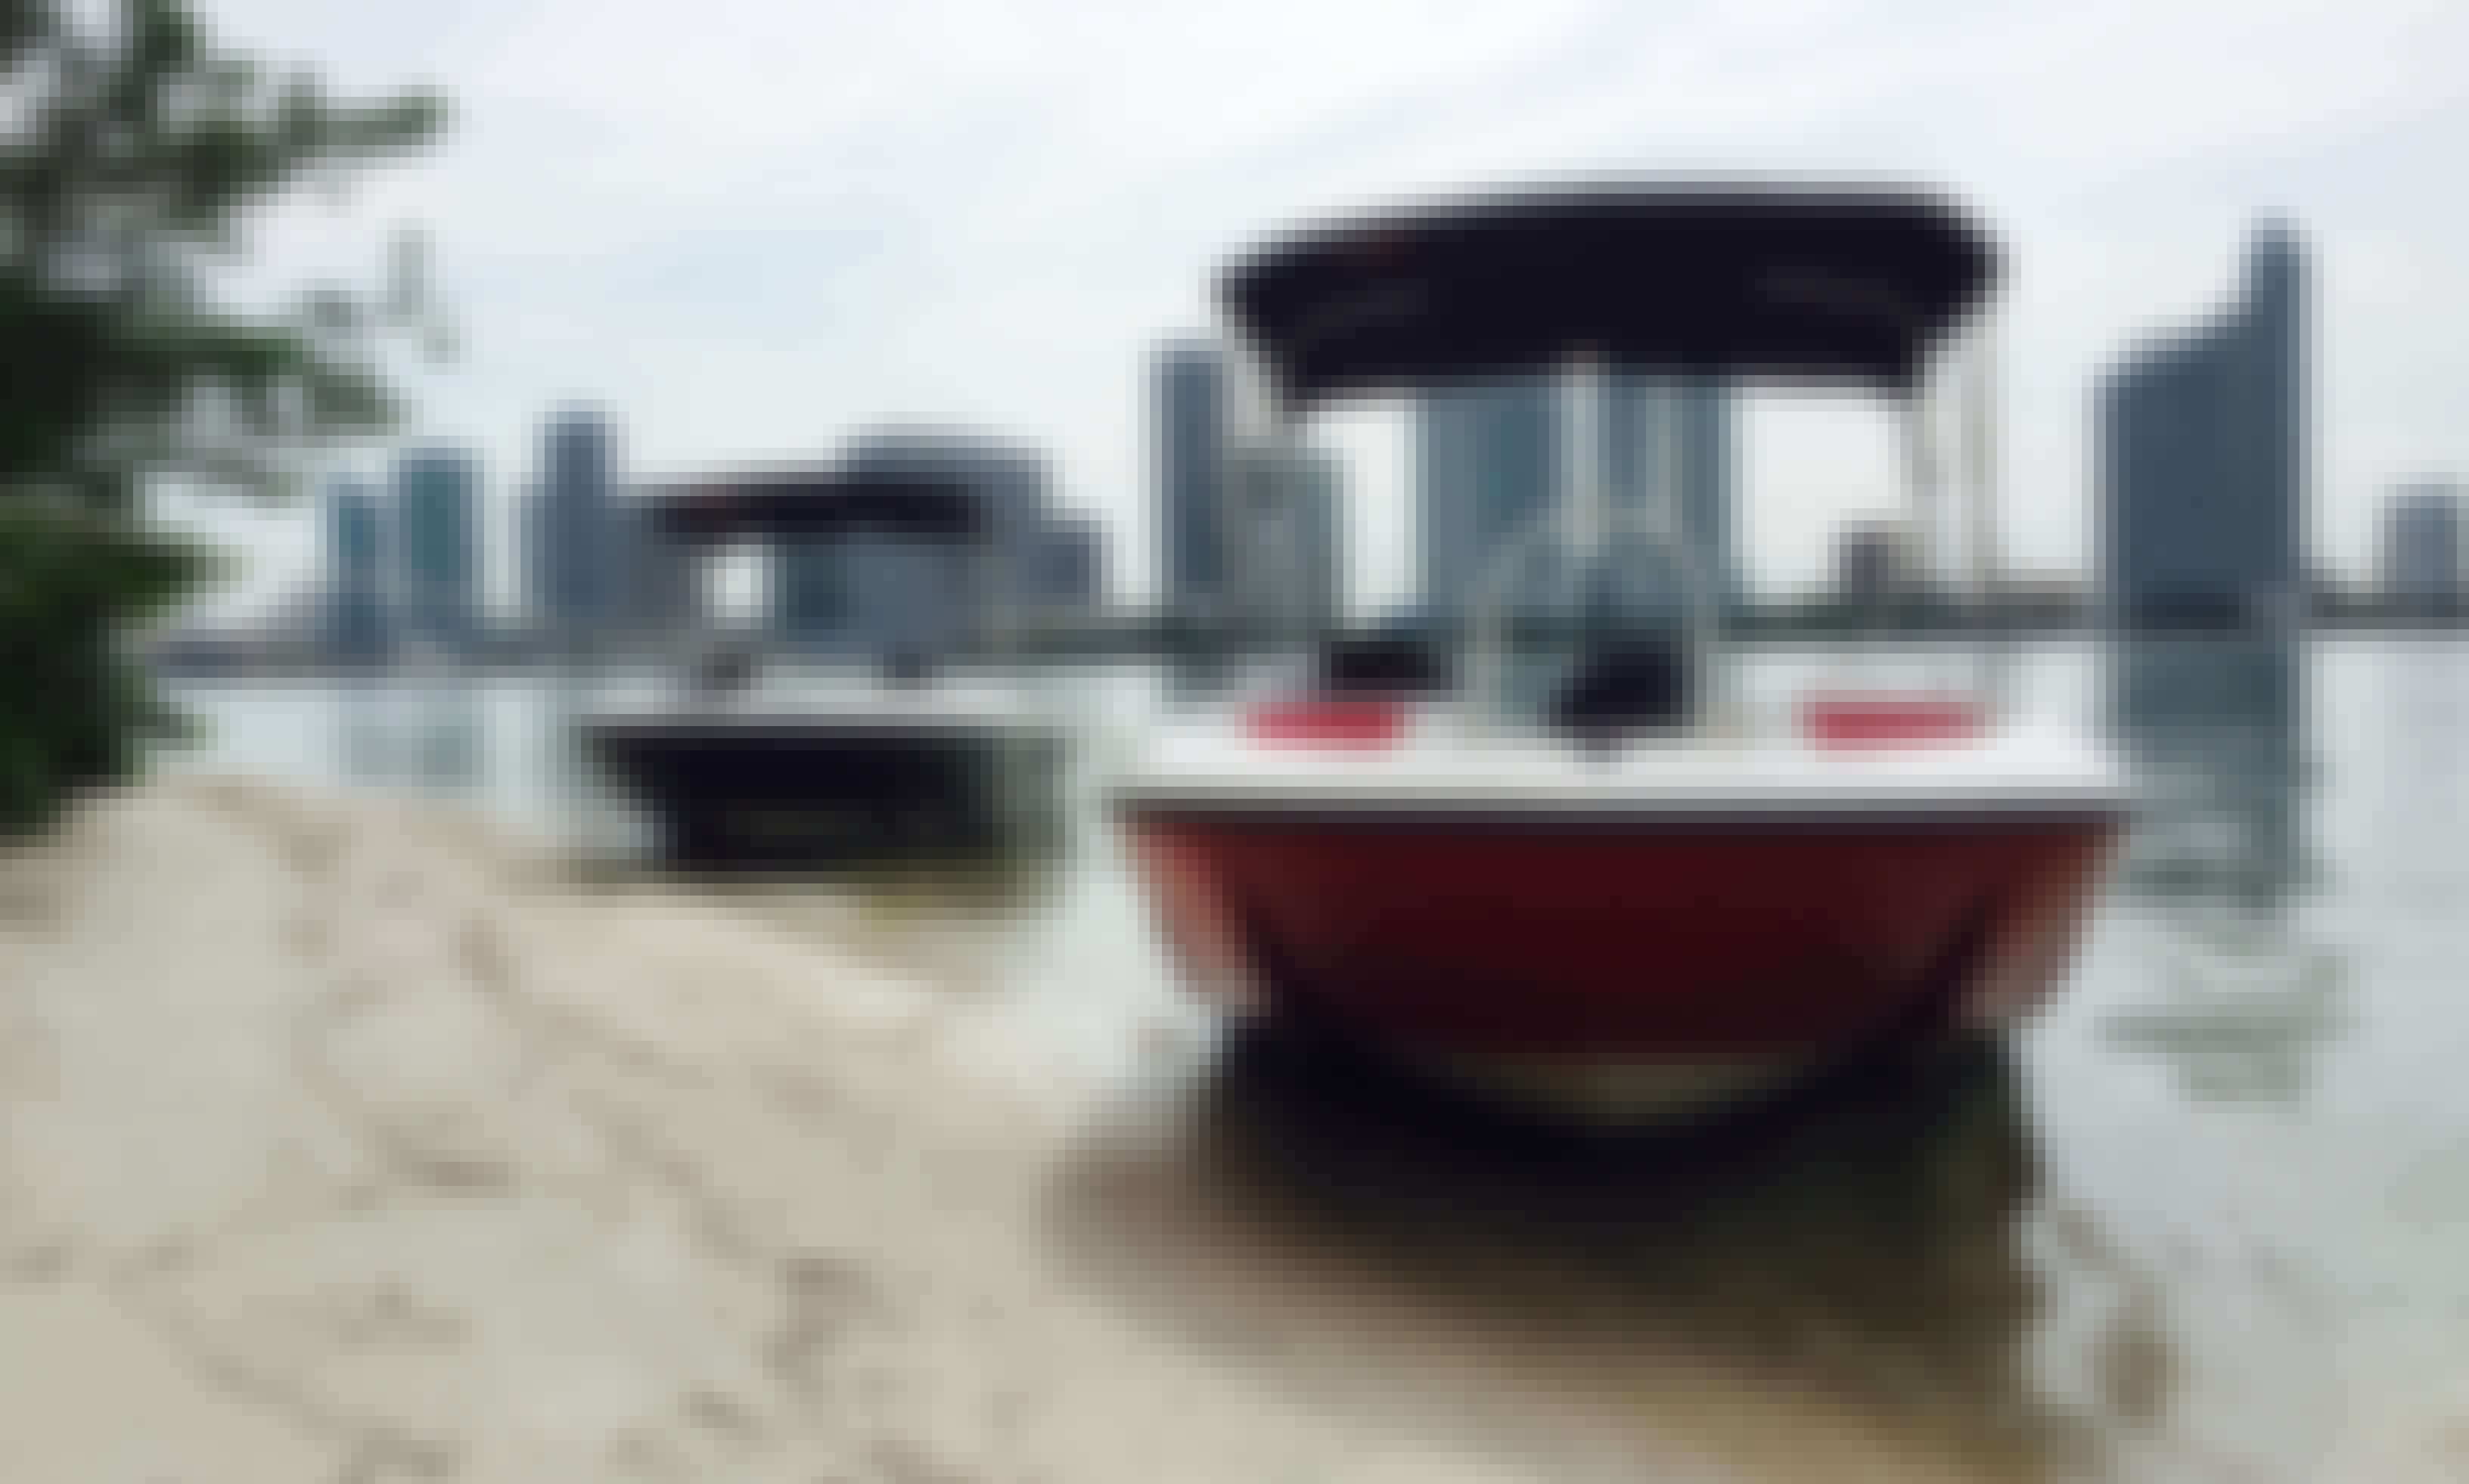 Bayliner e16 best for Miami Bay + Parking included! Miami, Florida